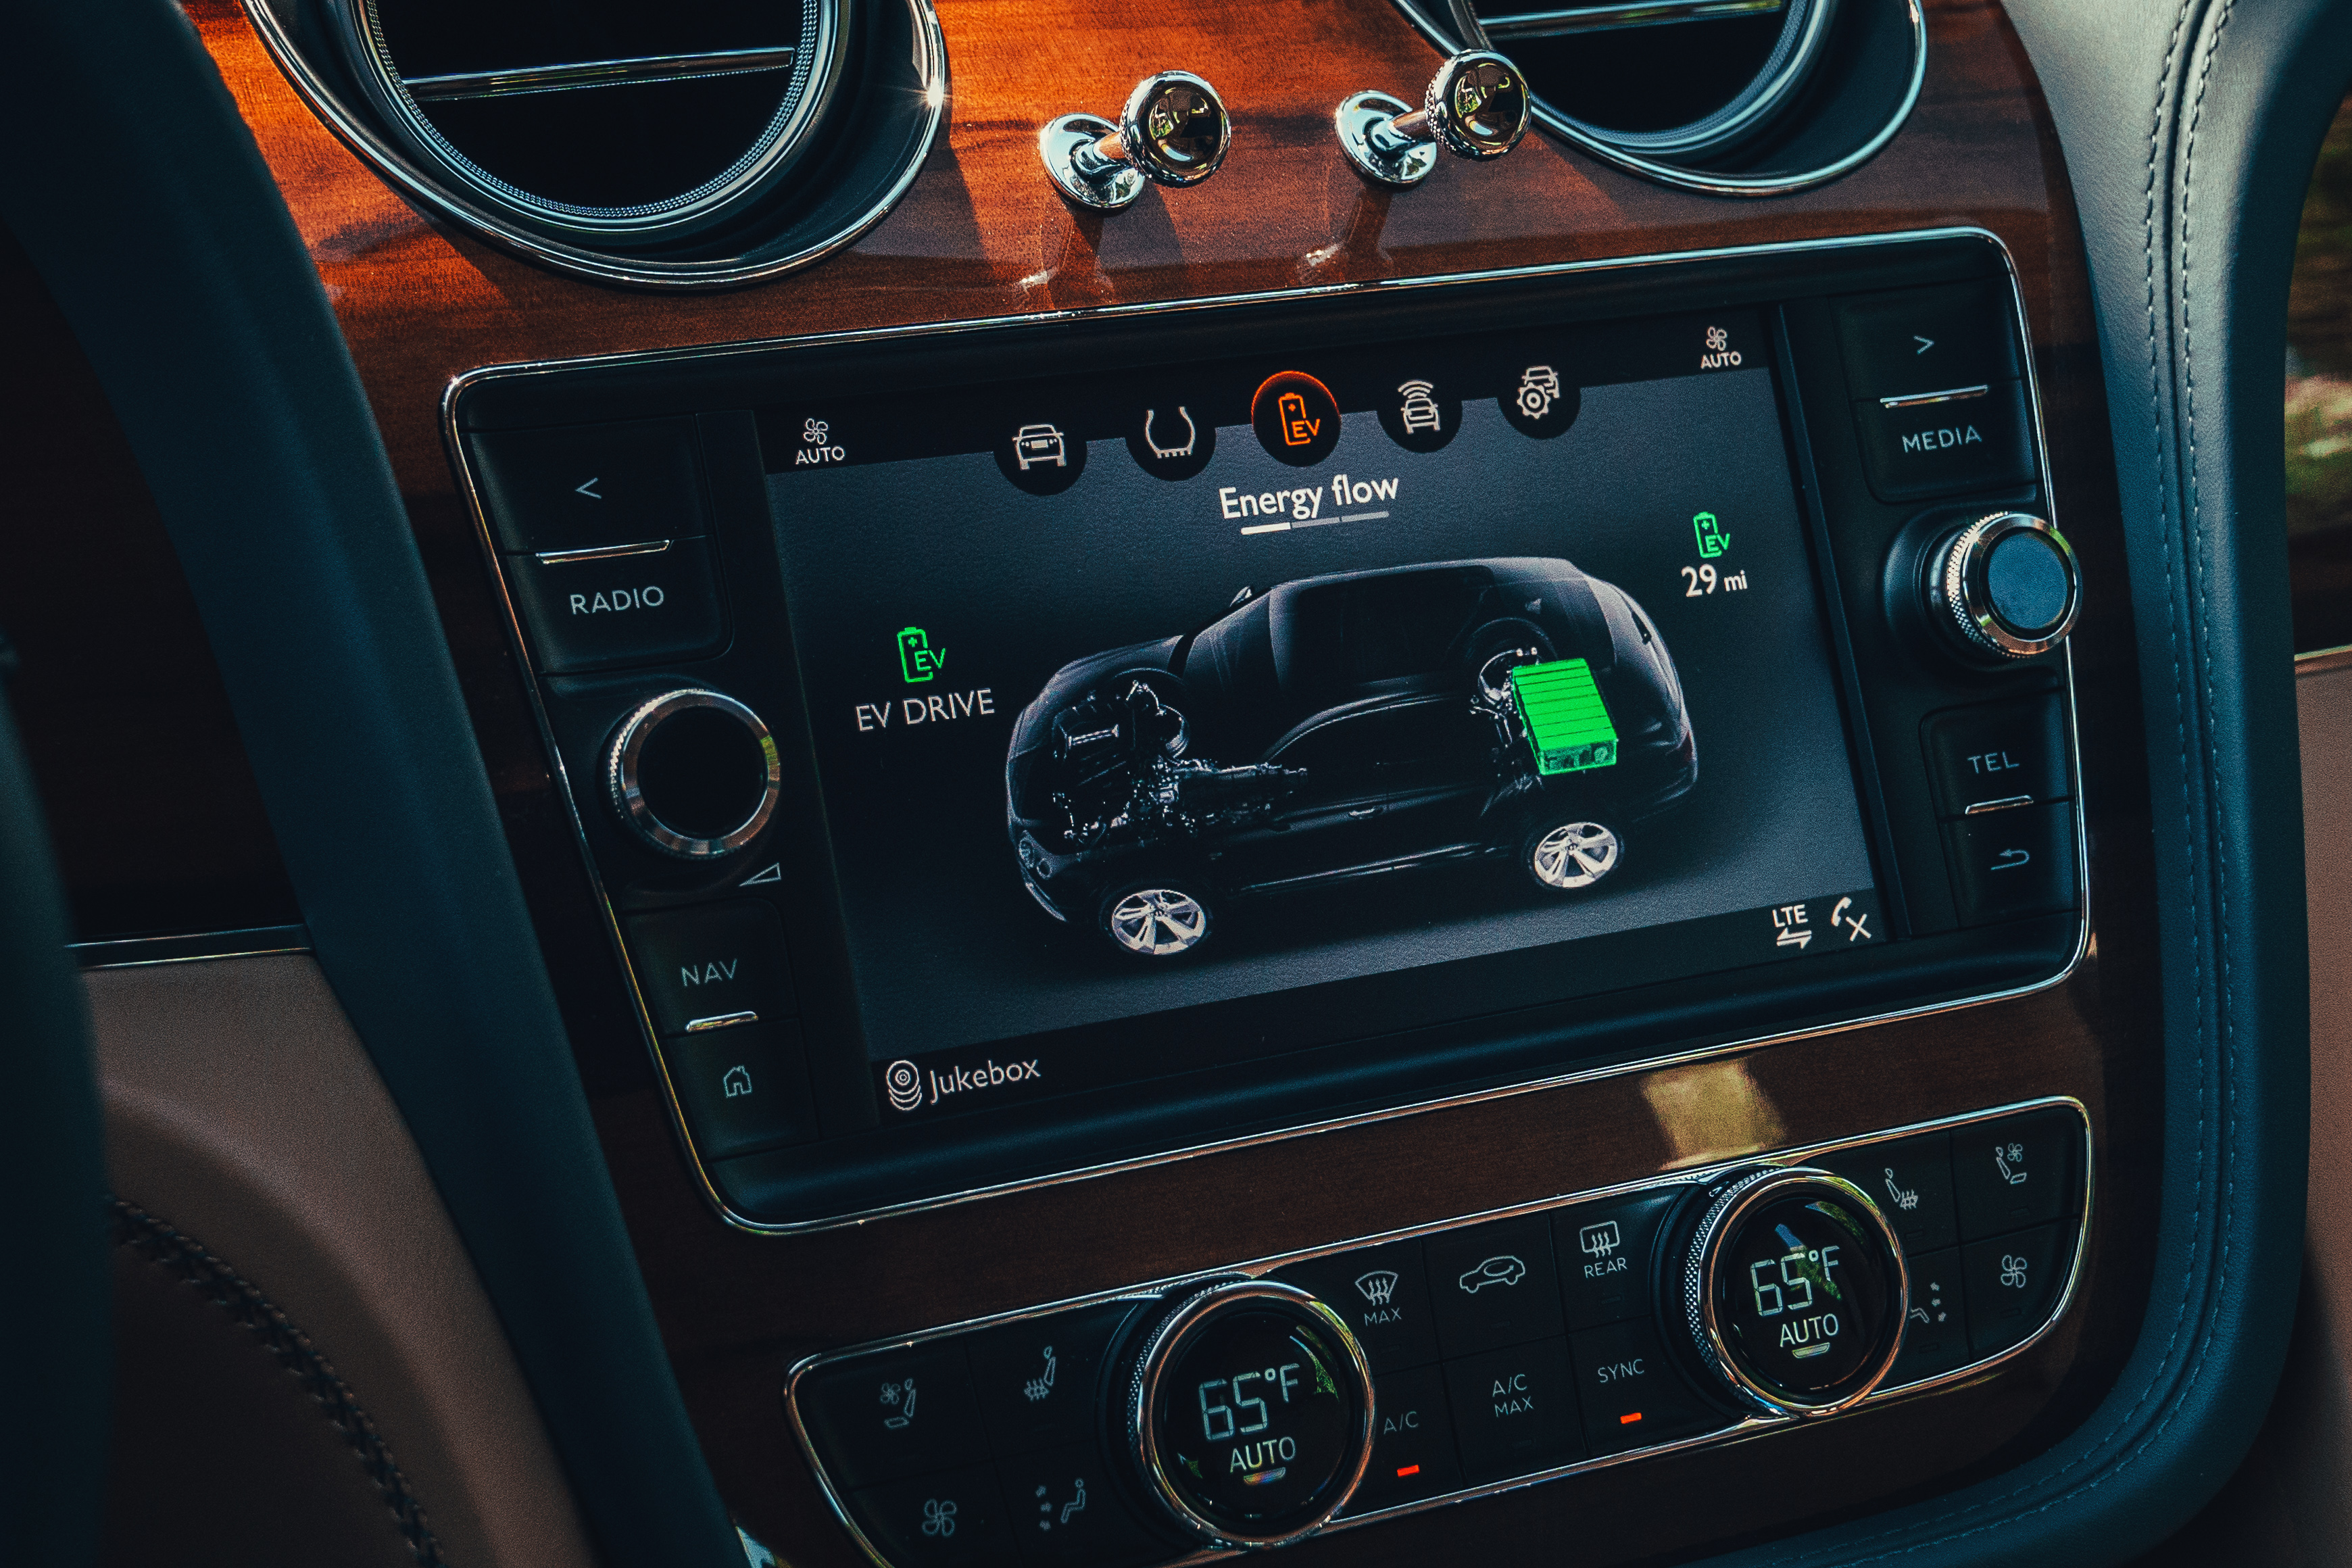 The infotainment system can be used to display information relating to the hybrid powertrain